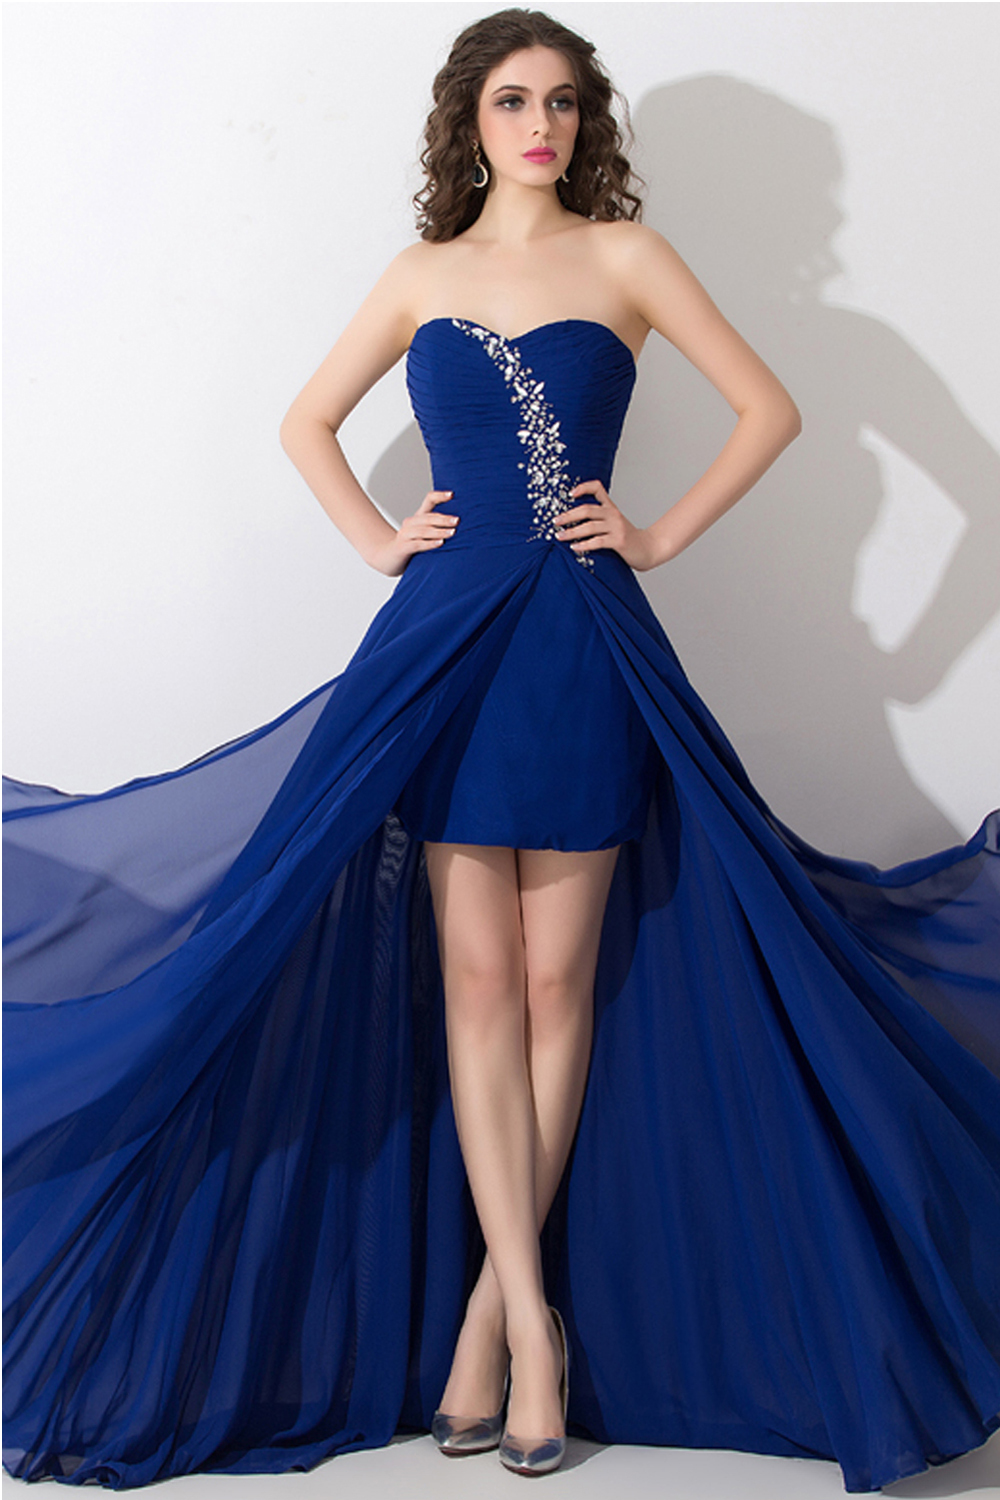 A-Line/Princess Strapless Floor Length Chiffon Graduation Dress with Pleats